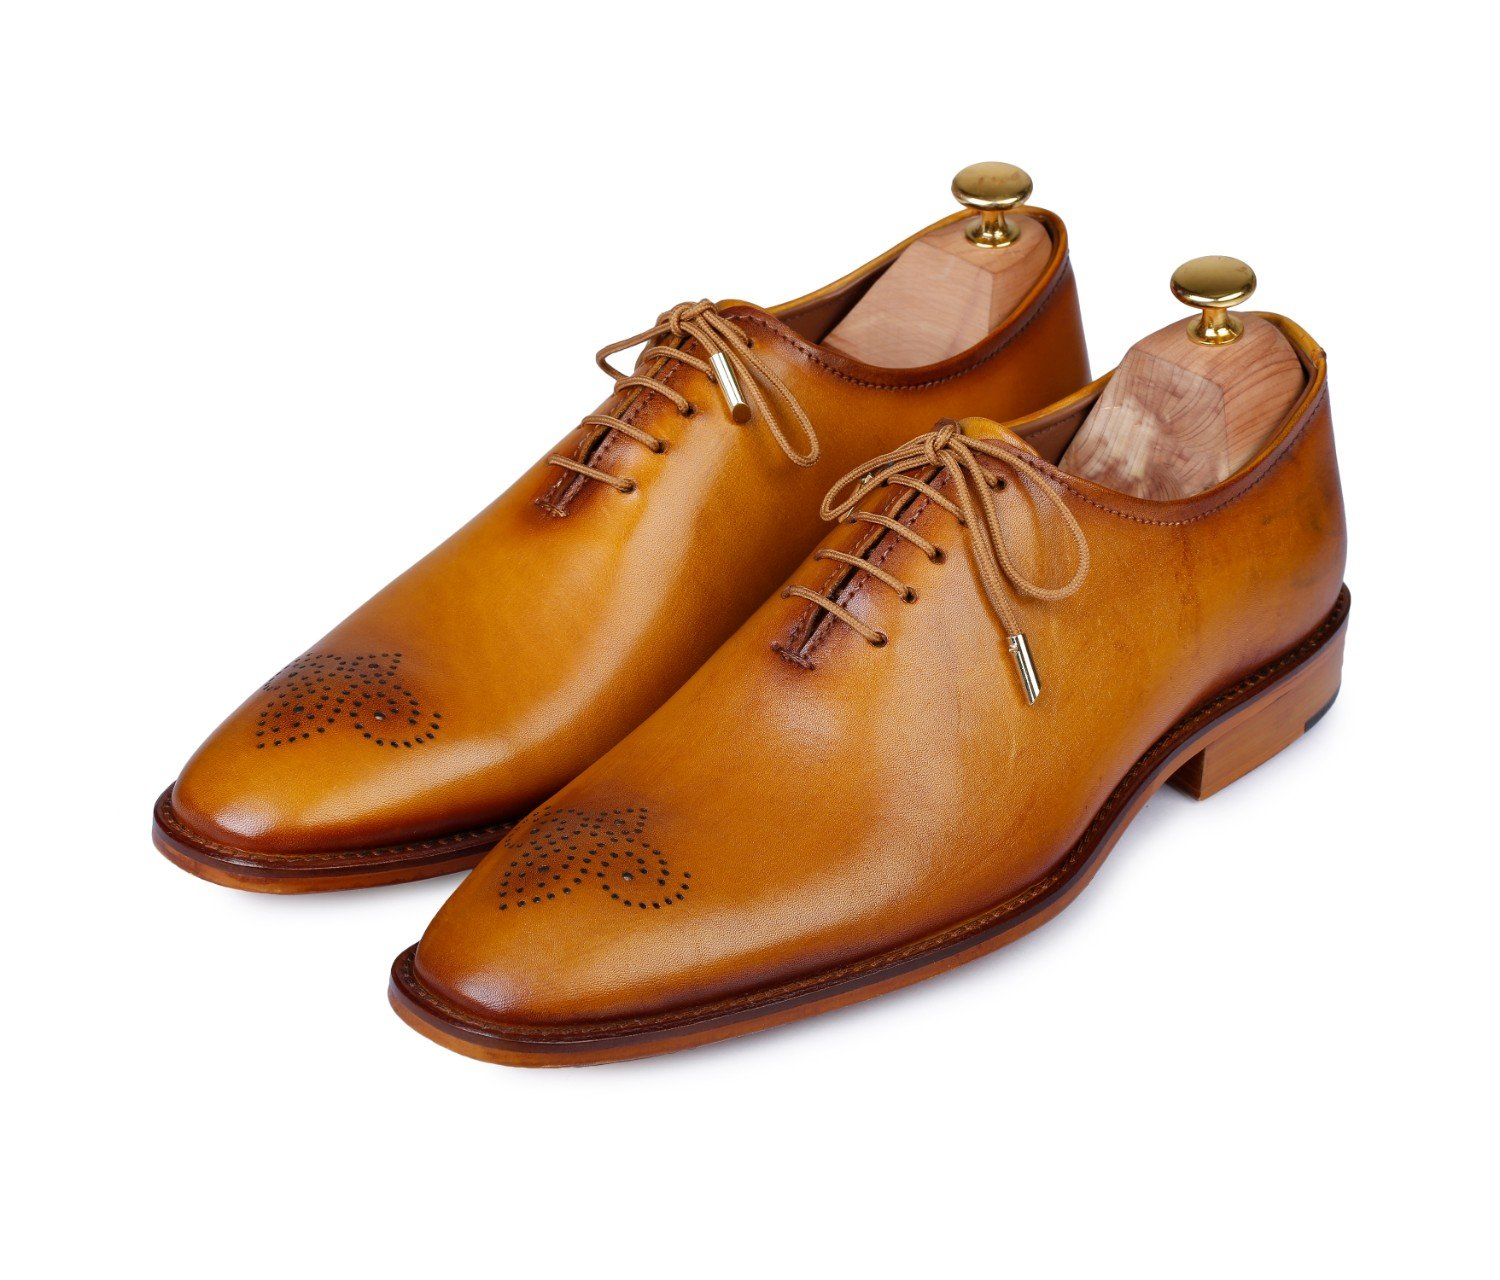 Lethato Handcrafted Wholecut Oxford Men's Genuine Leather Lace Up Dress Shoes- Golden